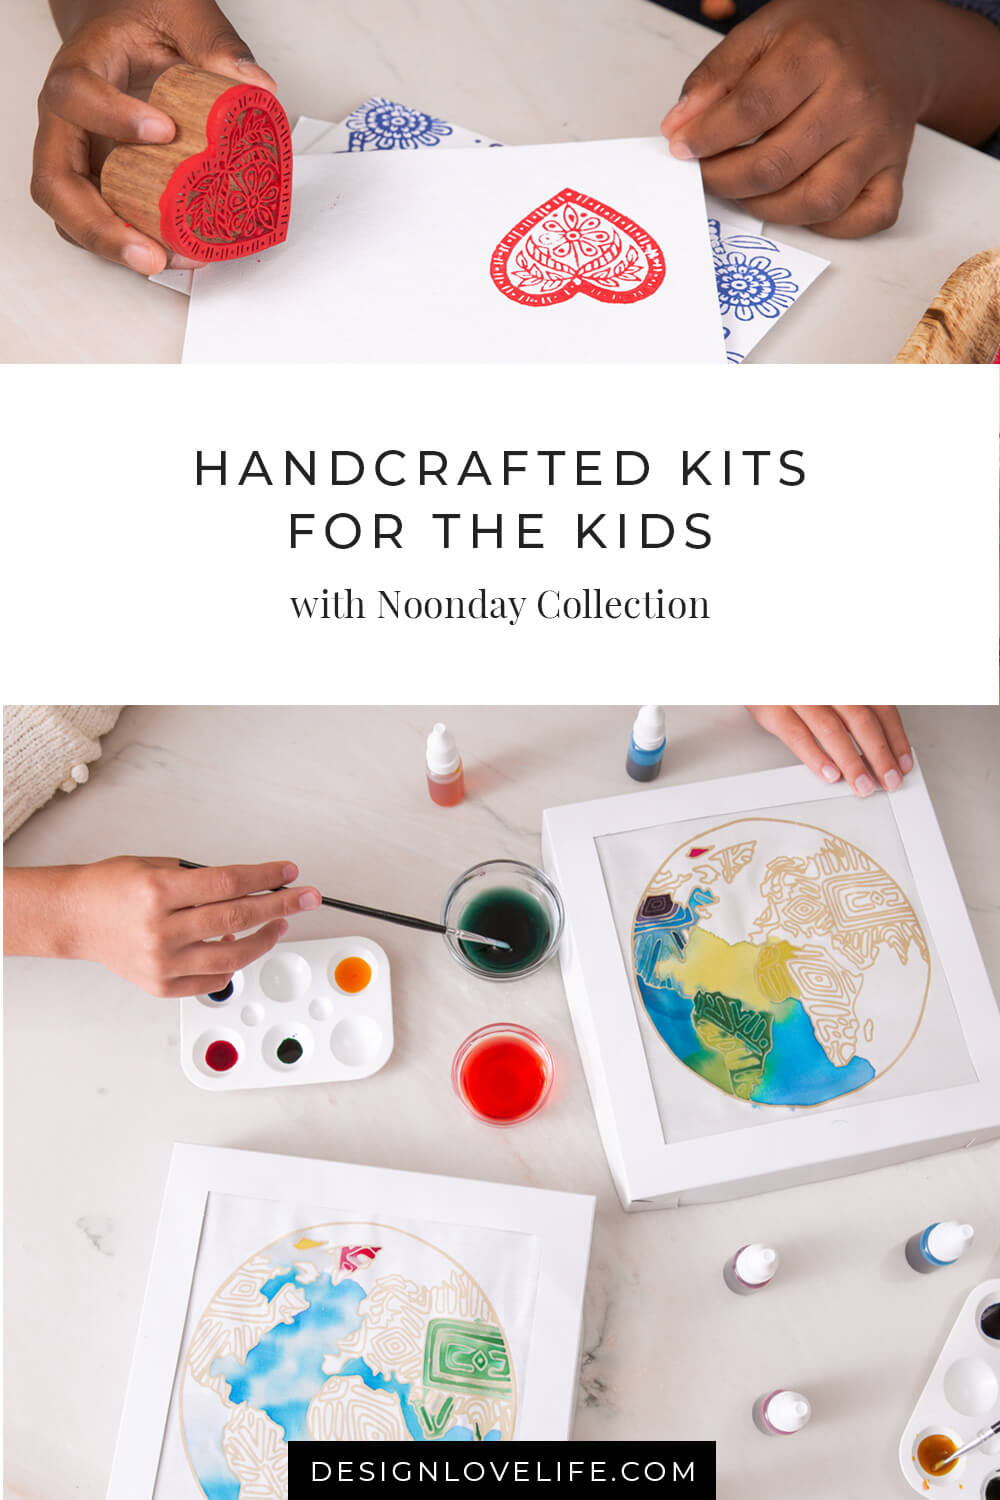 DIY kits are a thoughtful and joyous way to celebrate connection this holiday season! This Batik Dye Kit has everything you need to create a colorful work of art. Keep a set for you or your kids and gift a set to a friend! Noonday Handmade Gifts for Kids.